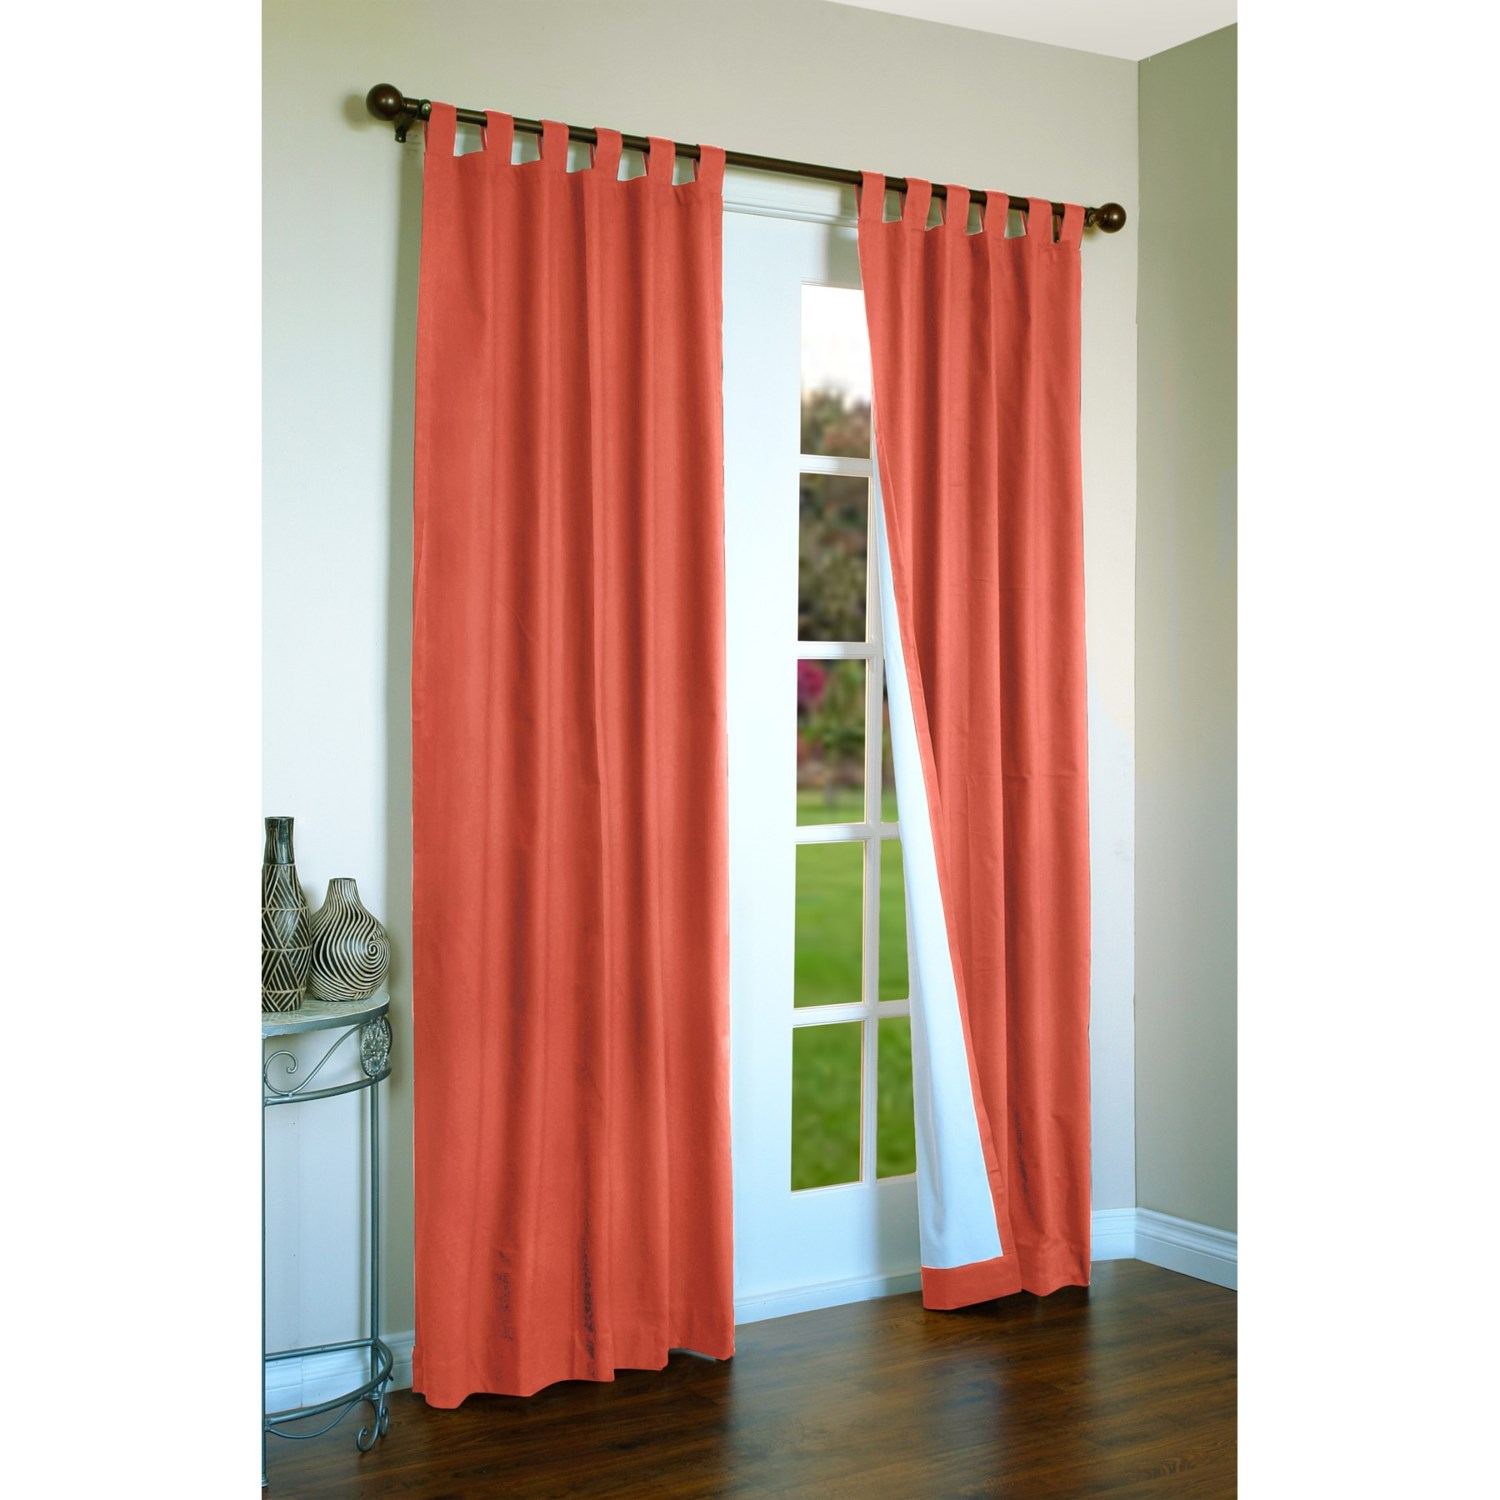 Thermalogic Weathermate Curtains 80x54 Tab Top Insulated Save 58